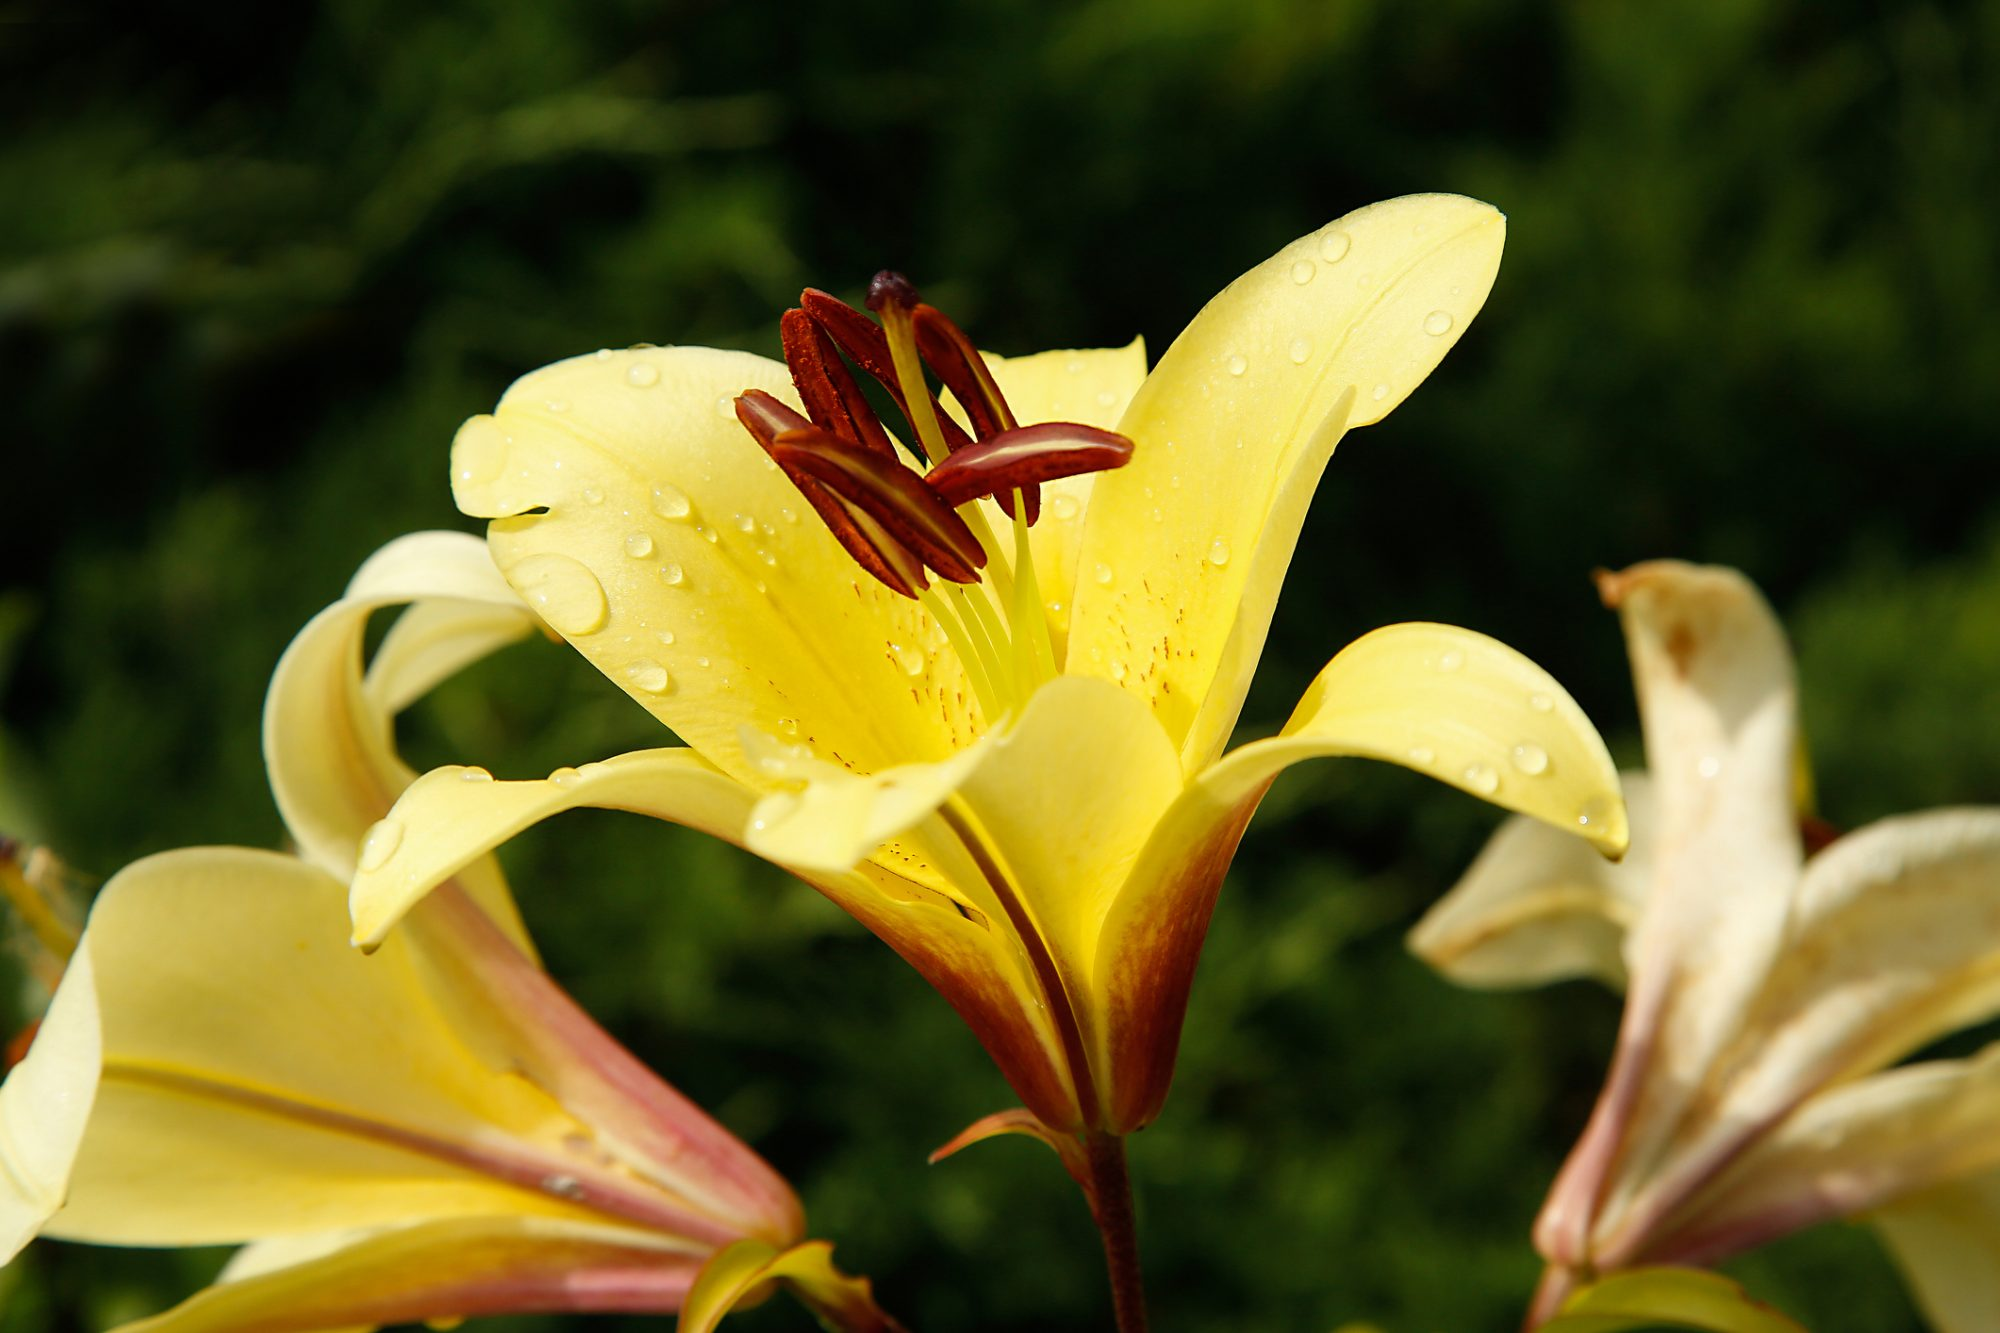 Golden Splendour lily